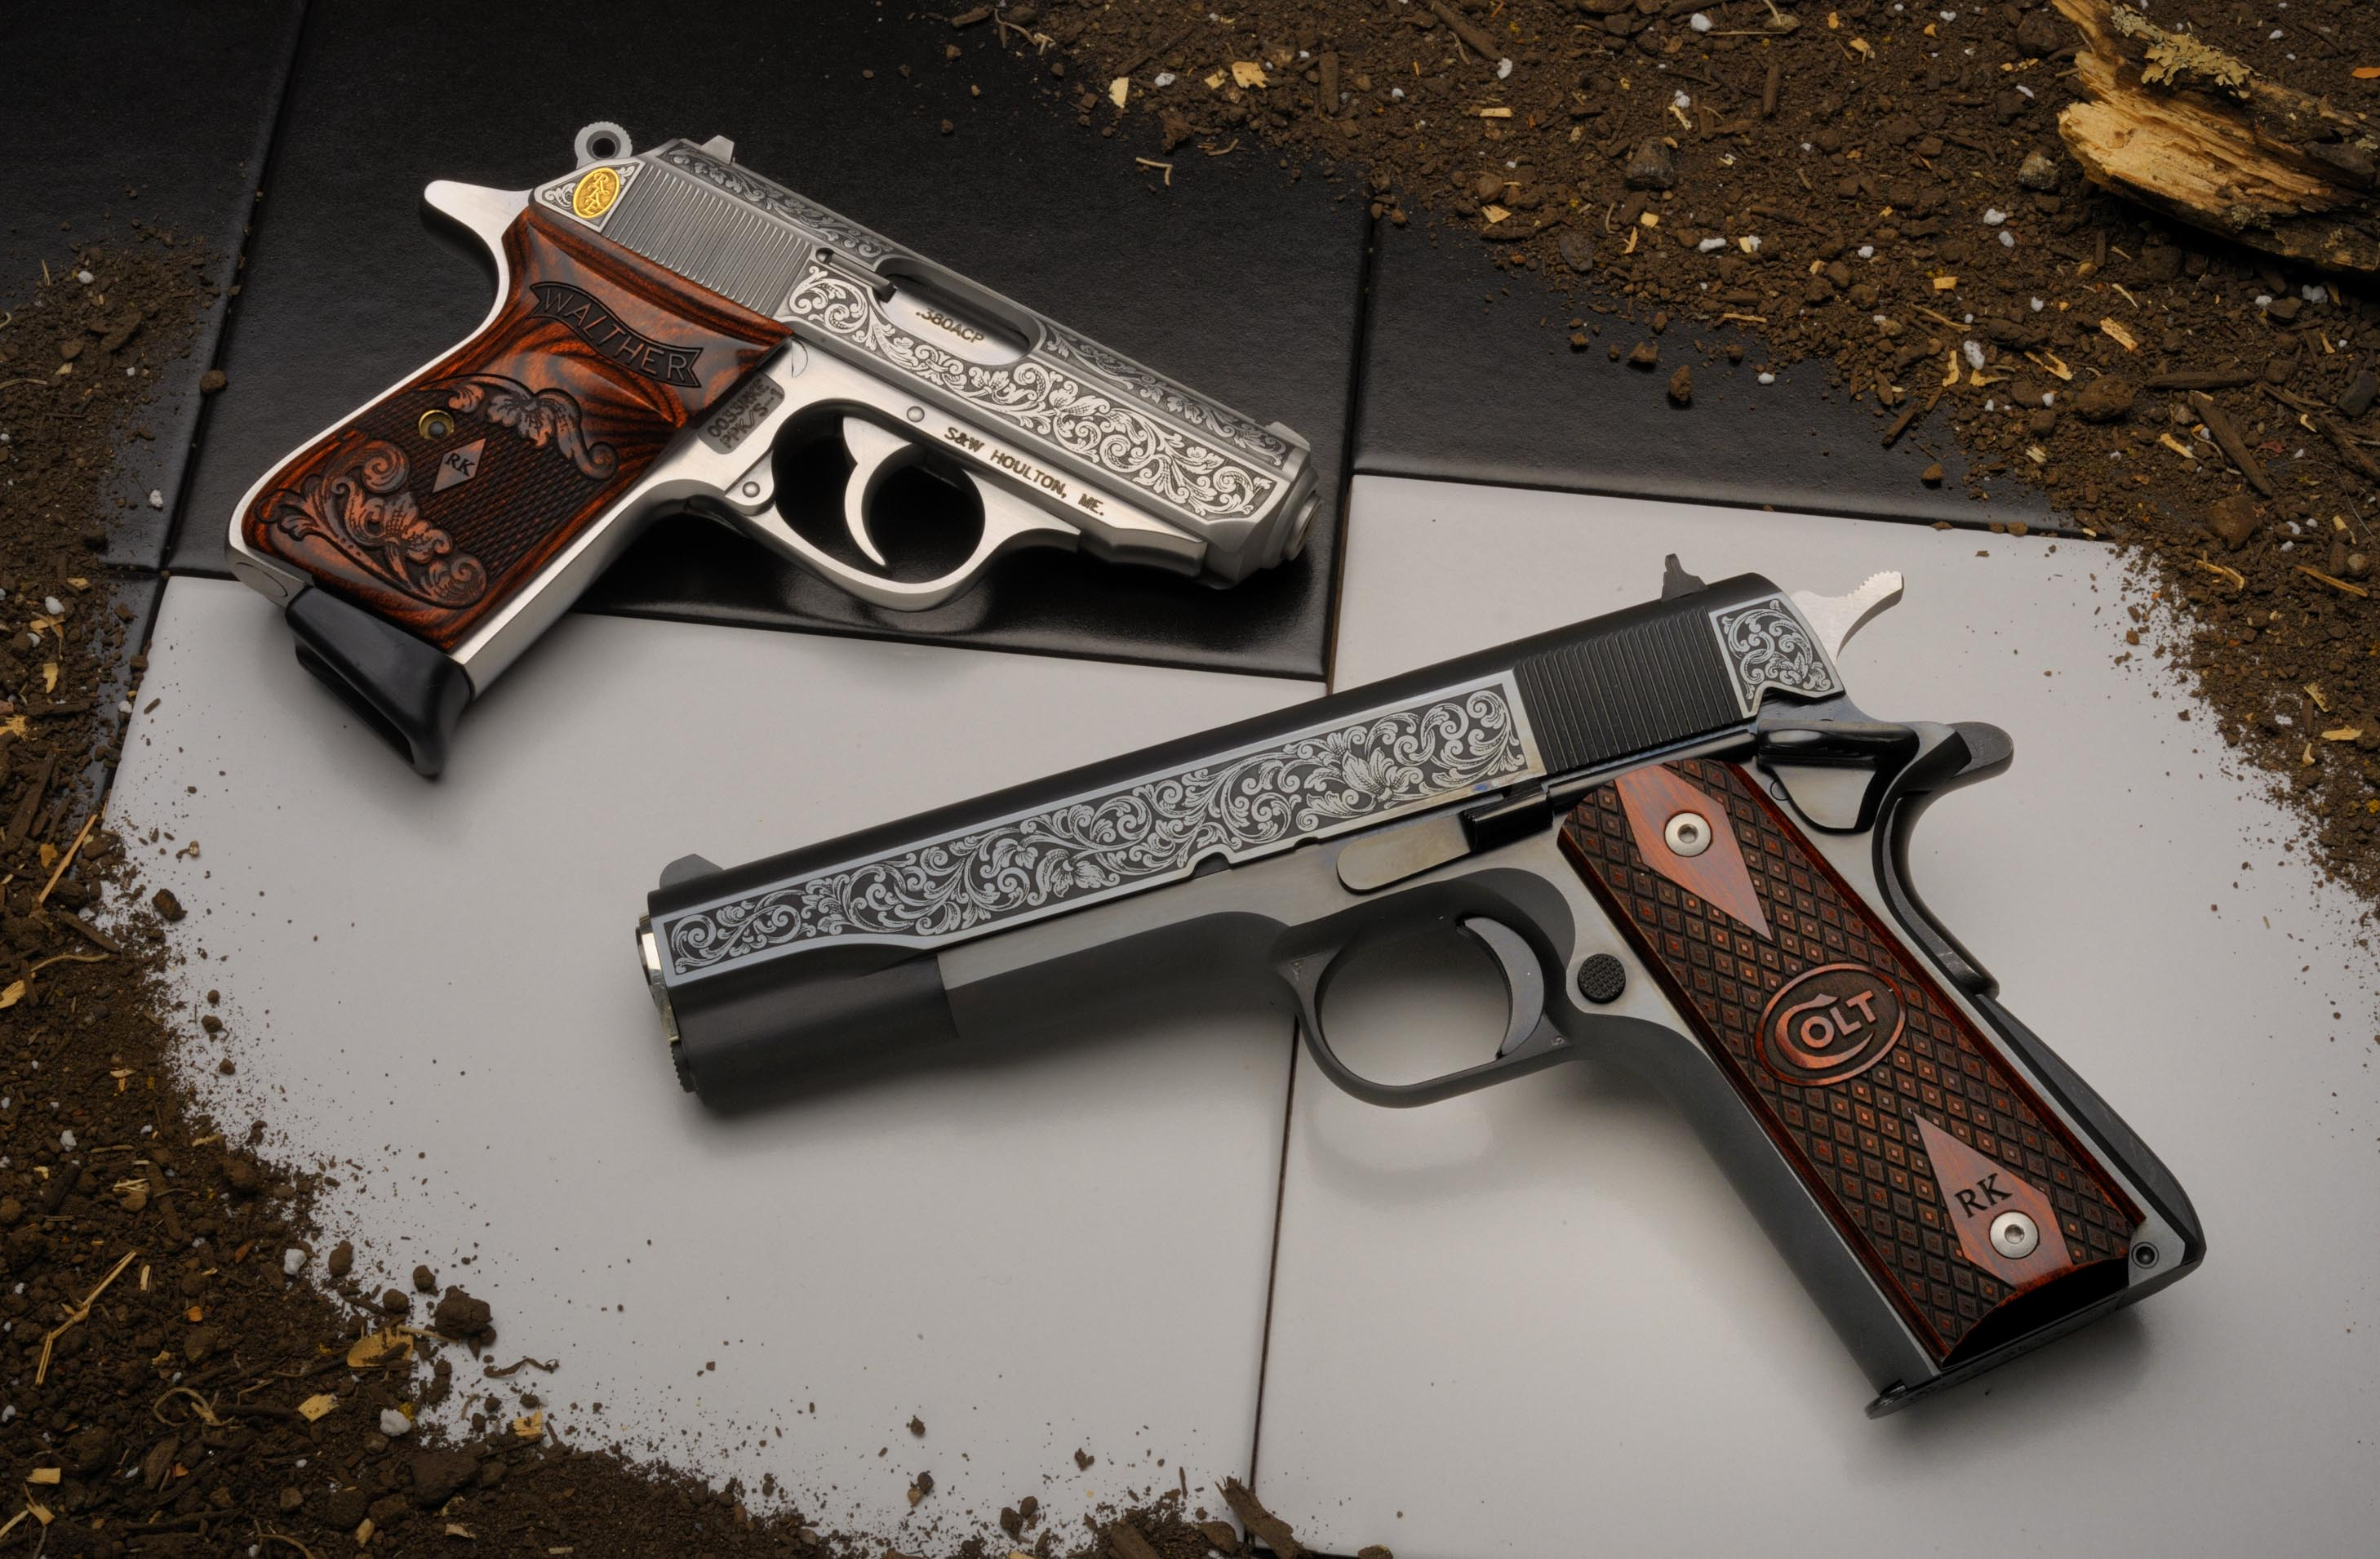 Sig Sauer Iphone Wallpaper Colt Pistol Full Hd Wallpaper And Background Image